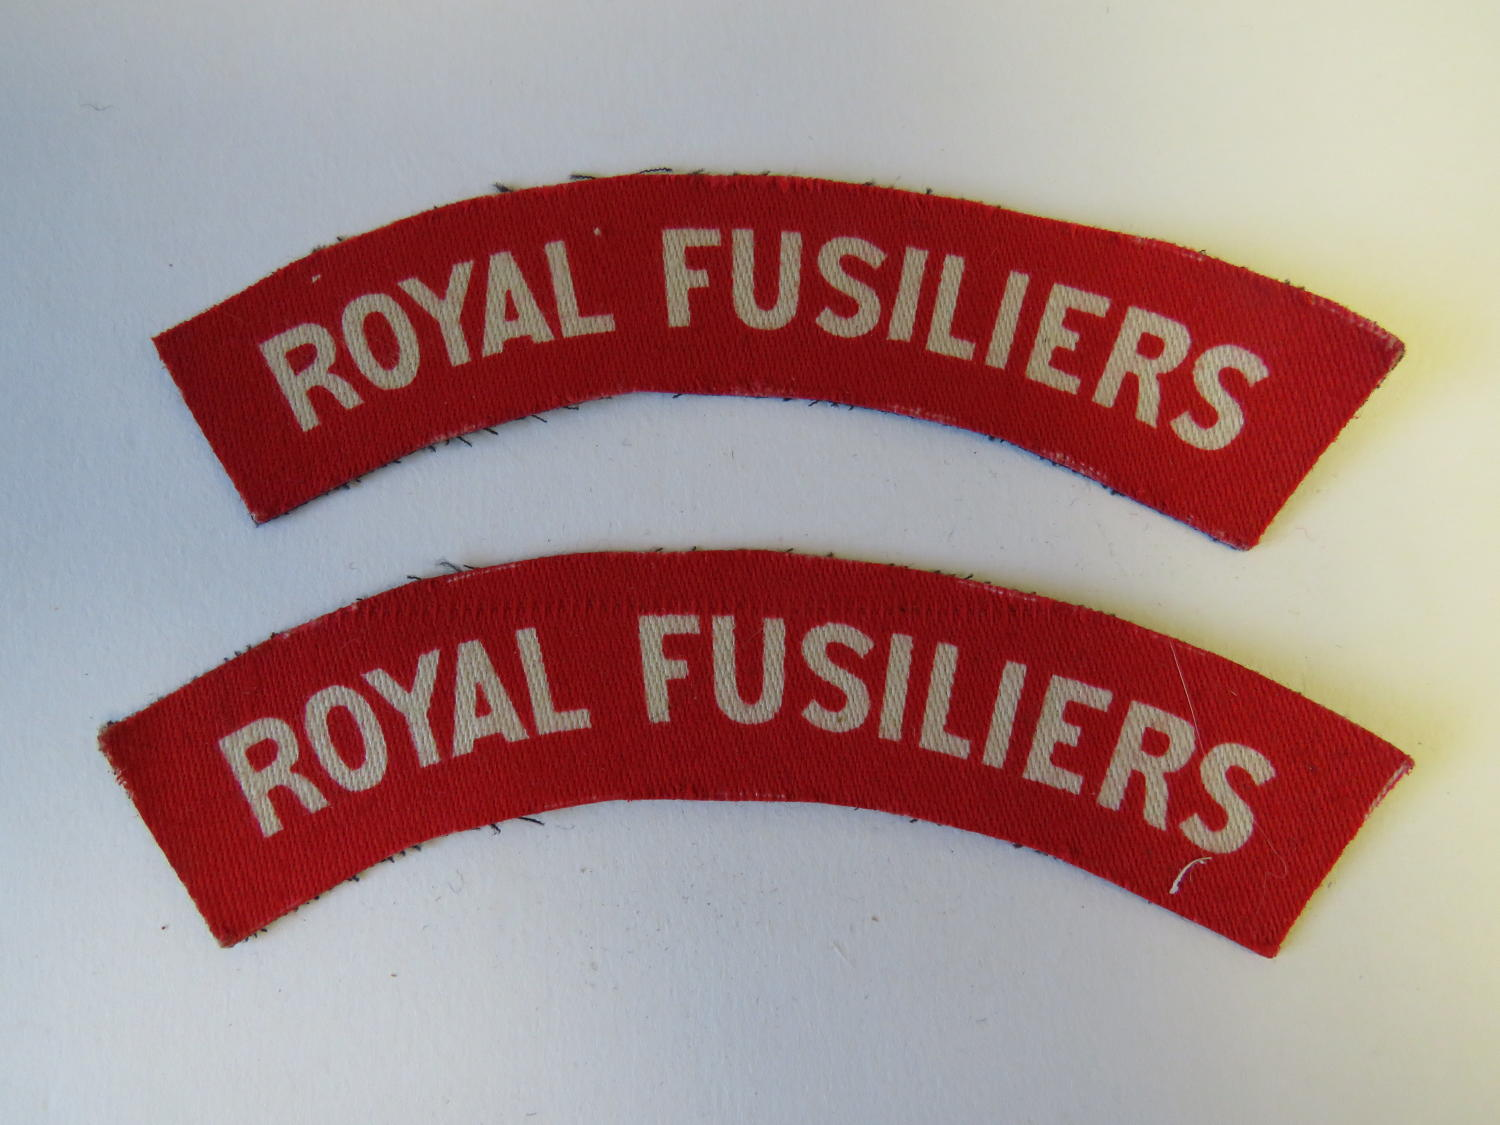 Pair of Royal Fusiliers Printed titles